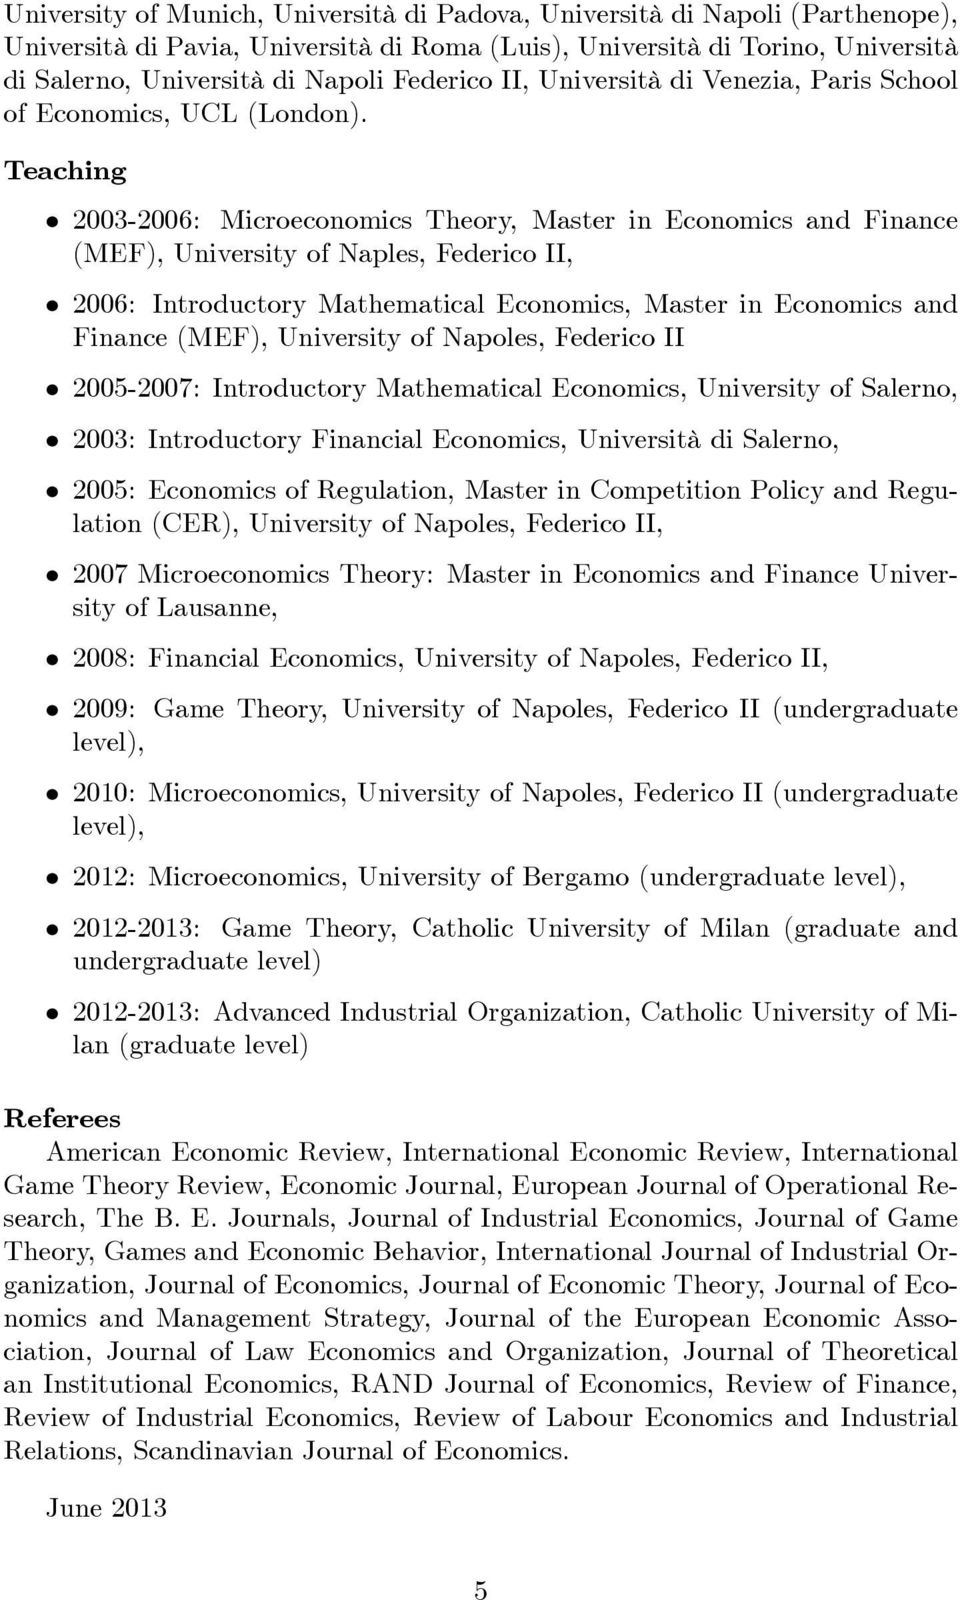 Teaching 2003-2006: Microeconomics Theory, Master in Economics and Finance (MEF), University of Naples, Federico II, 2006: Introductory Mathematical Economics, Master in Economics and Finance (MEF),